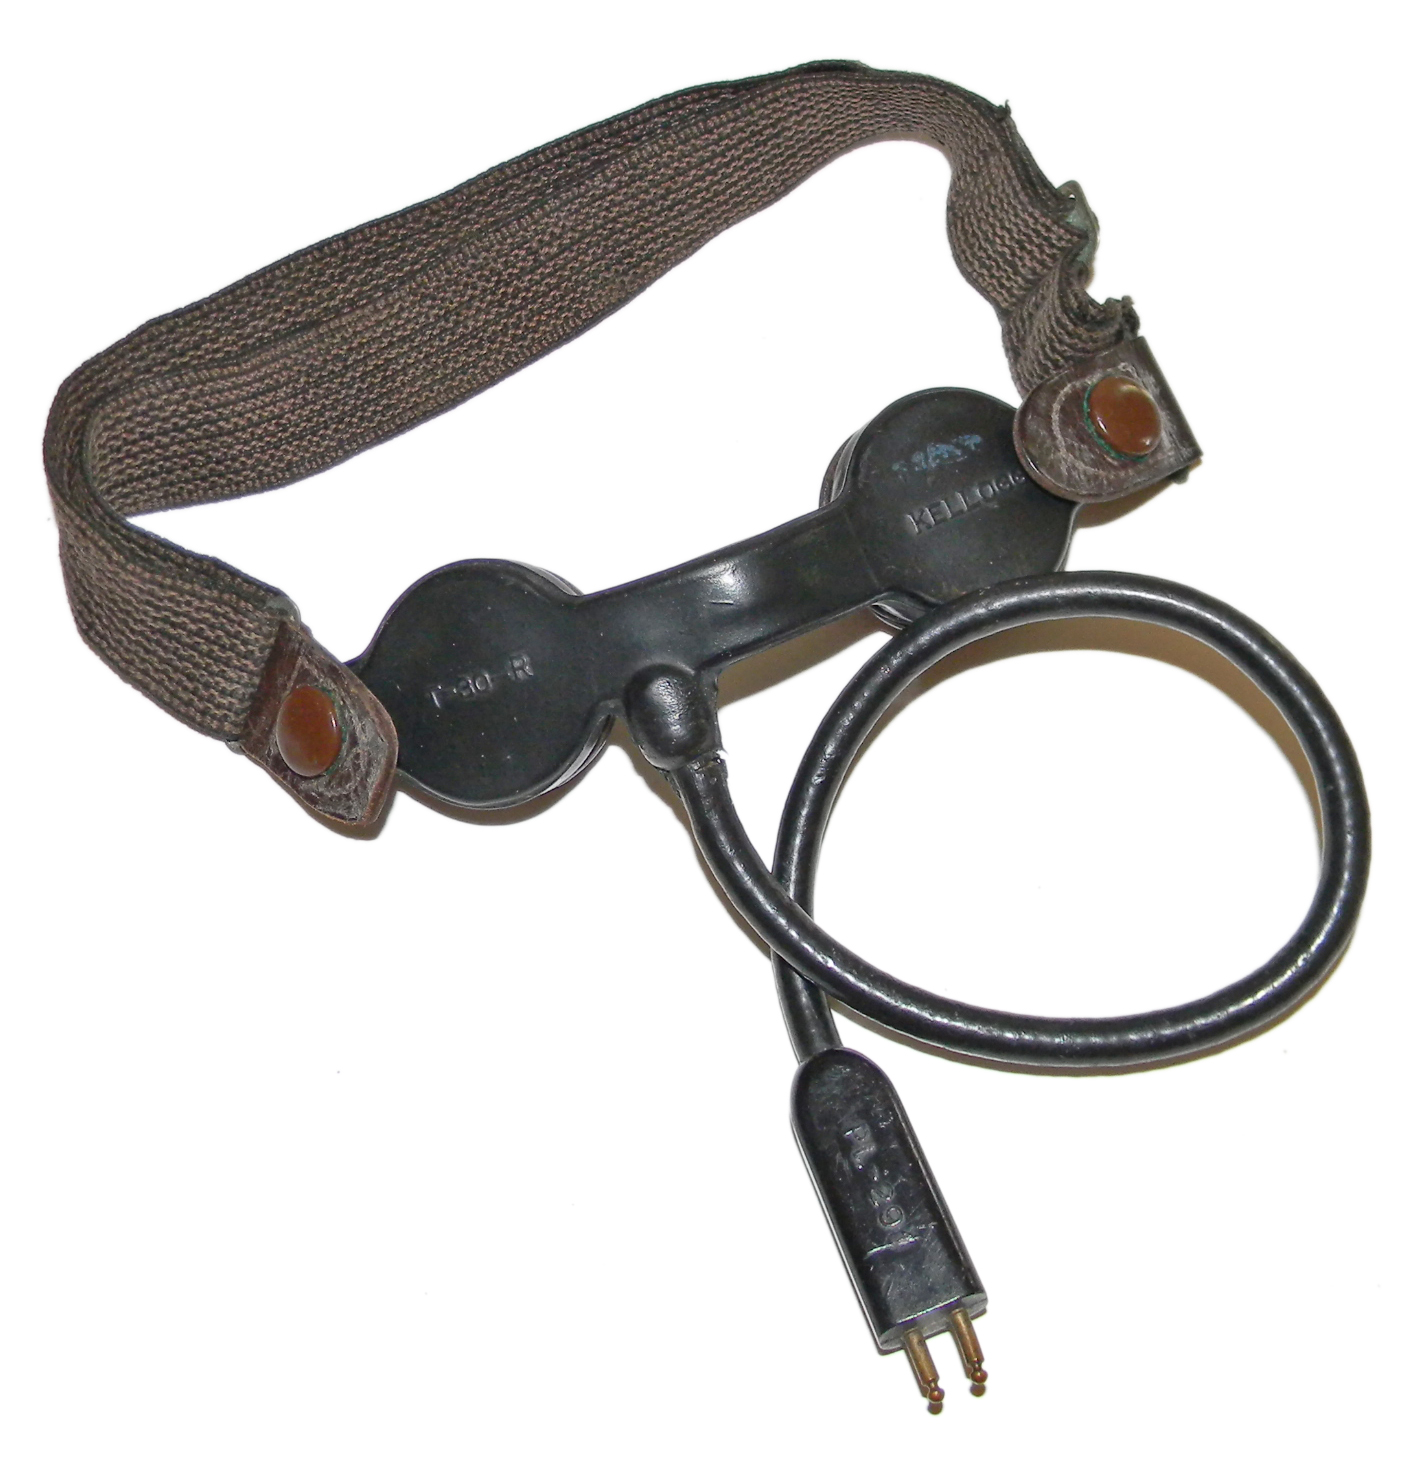 AAF T-30-R throat microphone